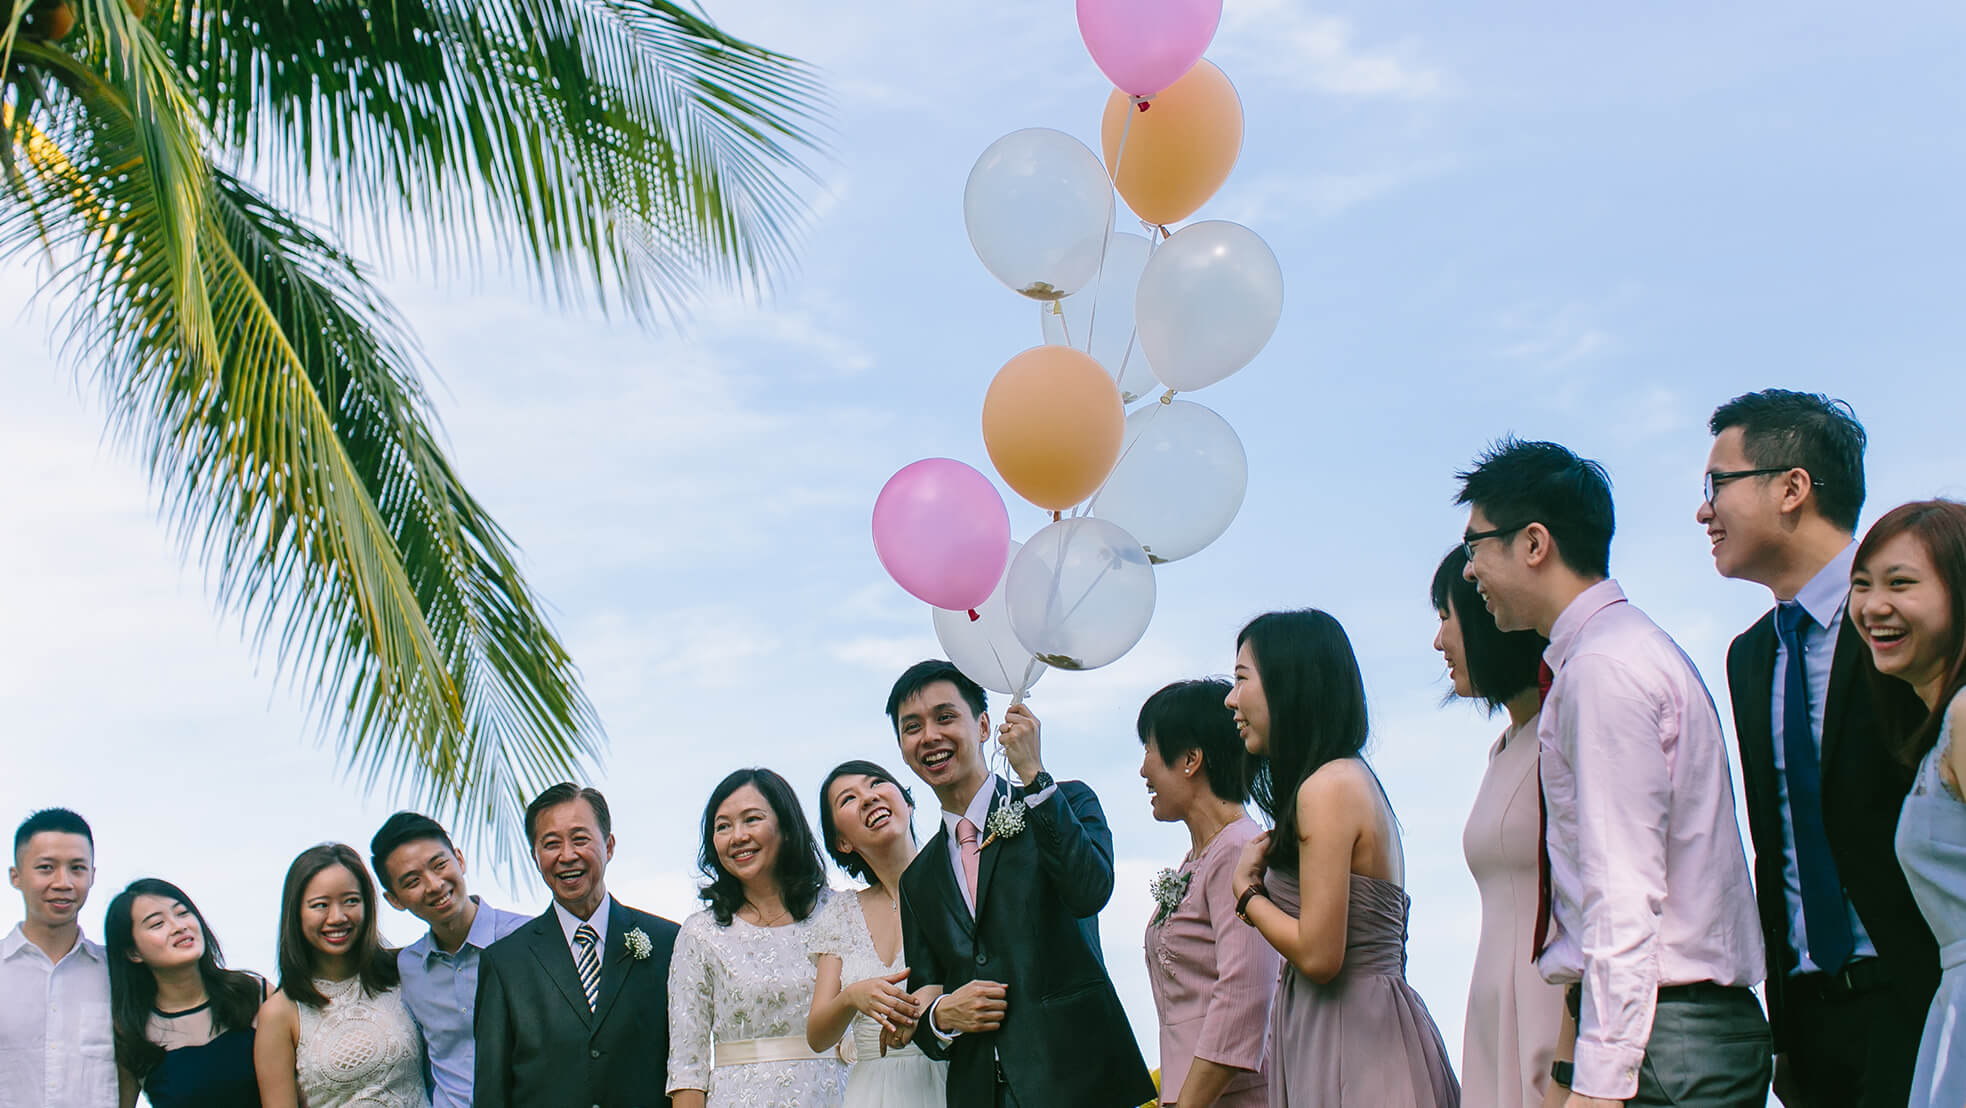 Sugar & Spice Events - Newlyweds with family and friends at the E&O Hotel Penang